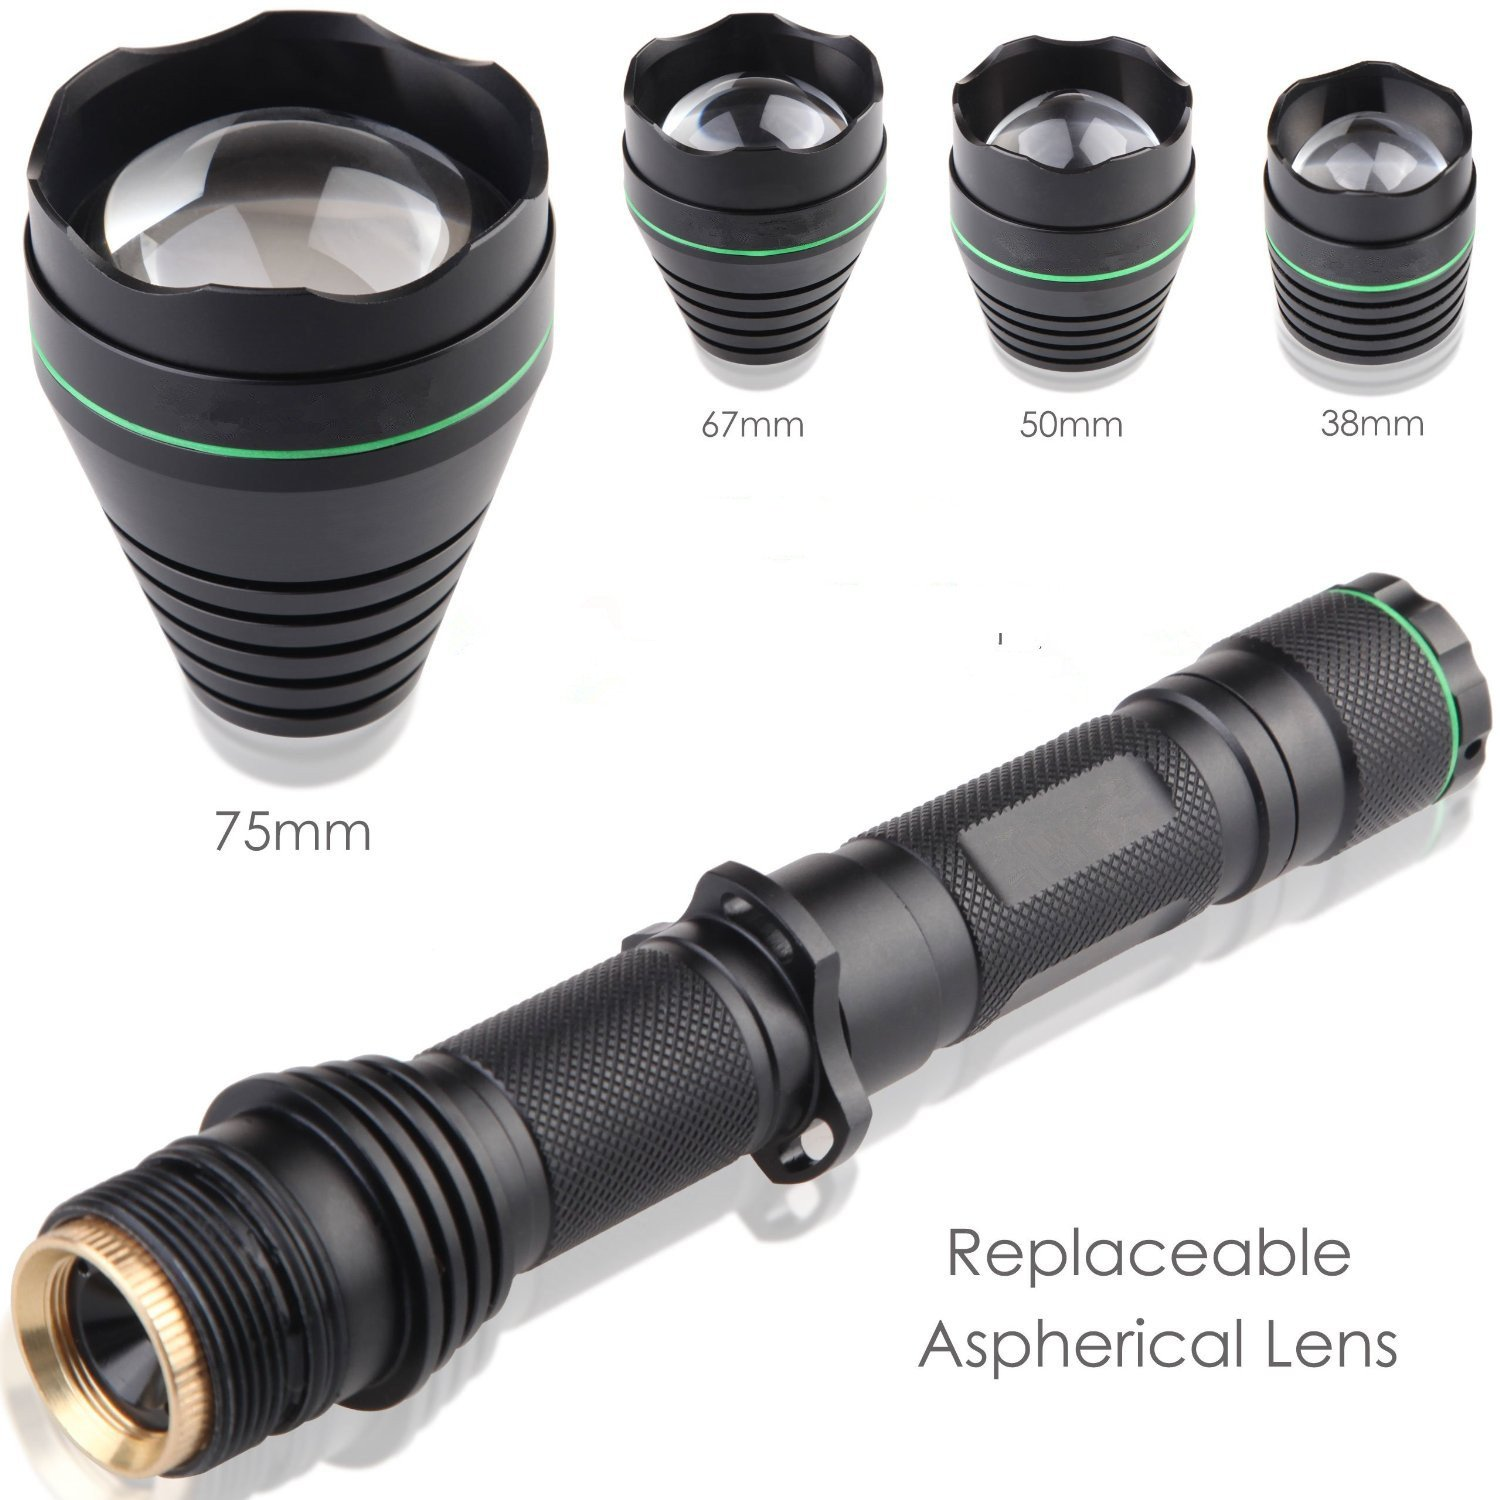 Uniquefire New Arrivel UF1508 Black IR 850NM T67 Infrared Light Night Vision Flashlight Adjustable Focus Zoomable Torch + 38MM / 50MM / 75MM Lens kit set for Night Huting (850NM kit set)